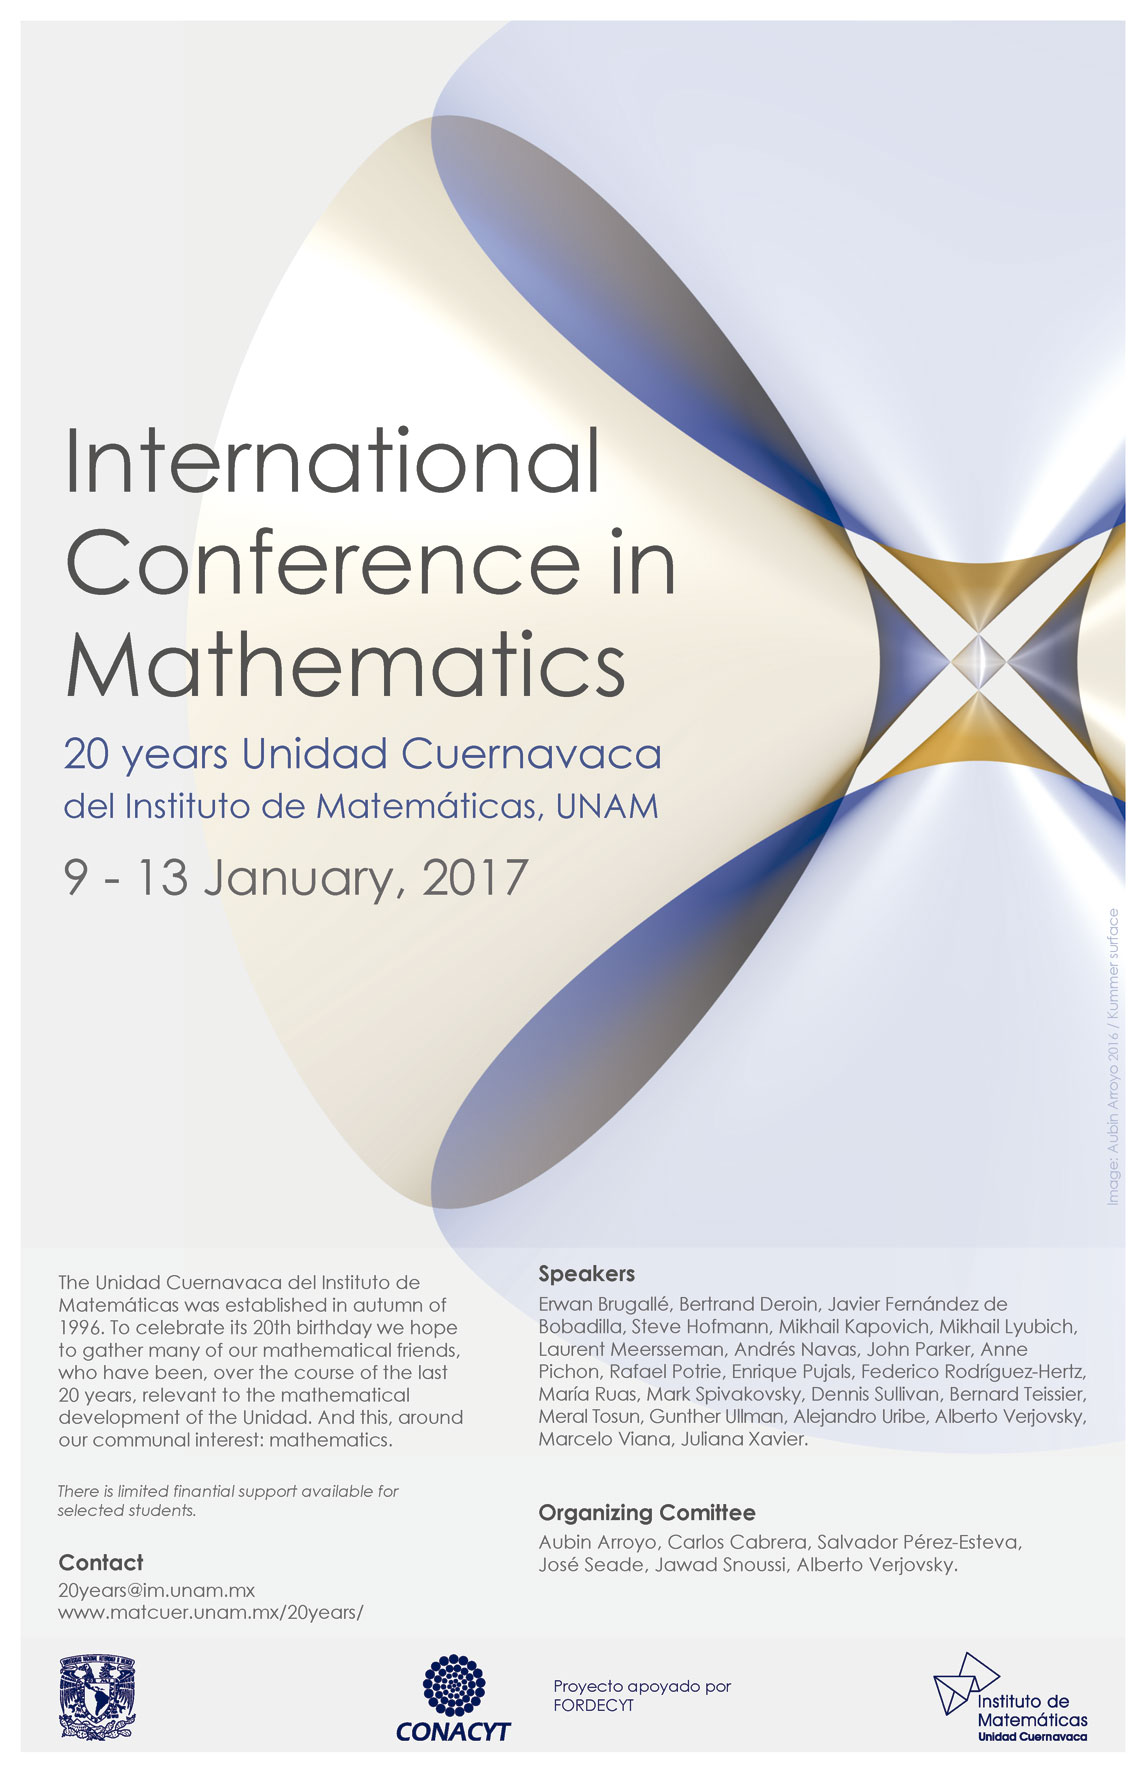 International Conference in Mathematics. 20 años Unidad Cuernavaca del Instituto de Matemáticas